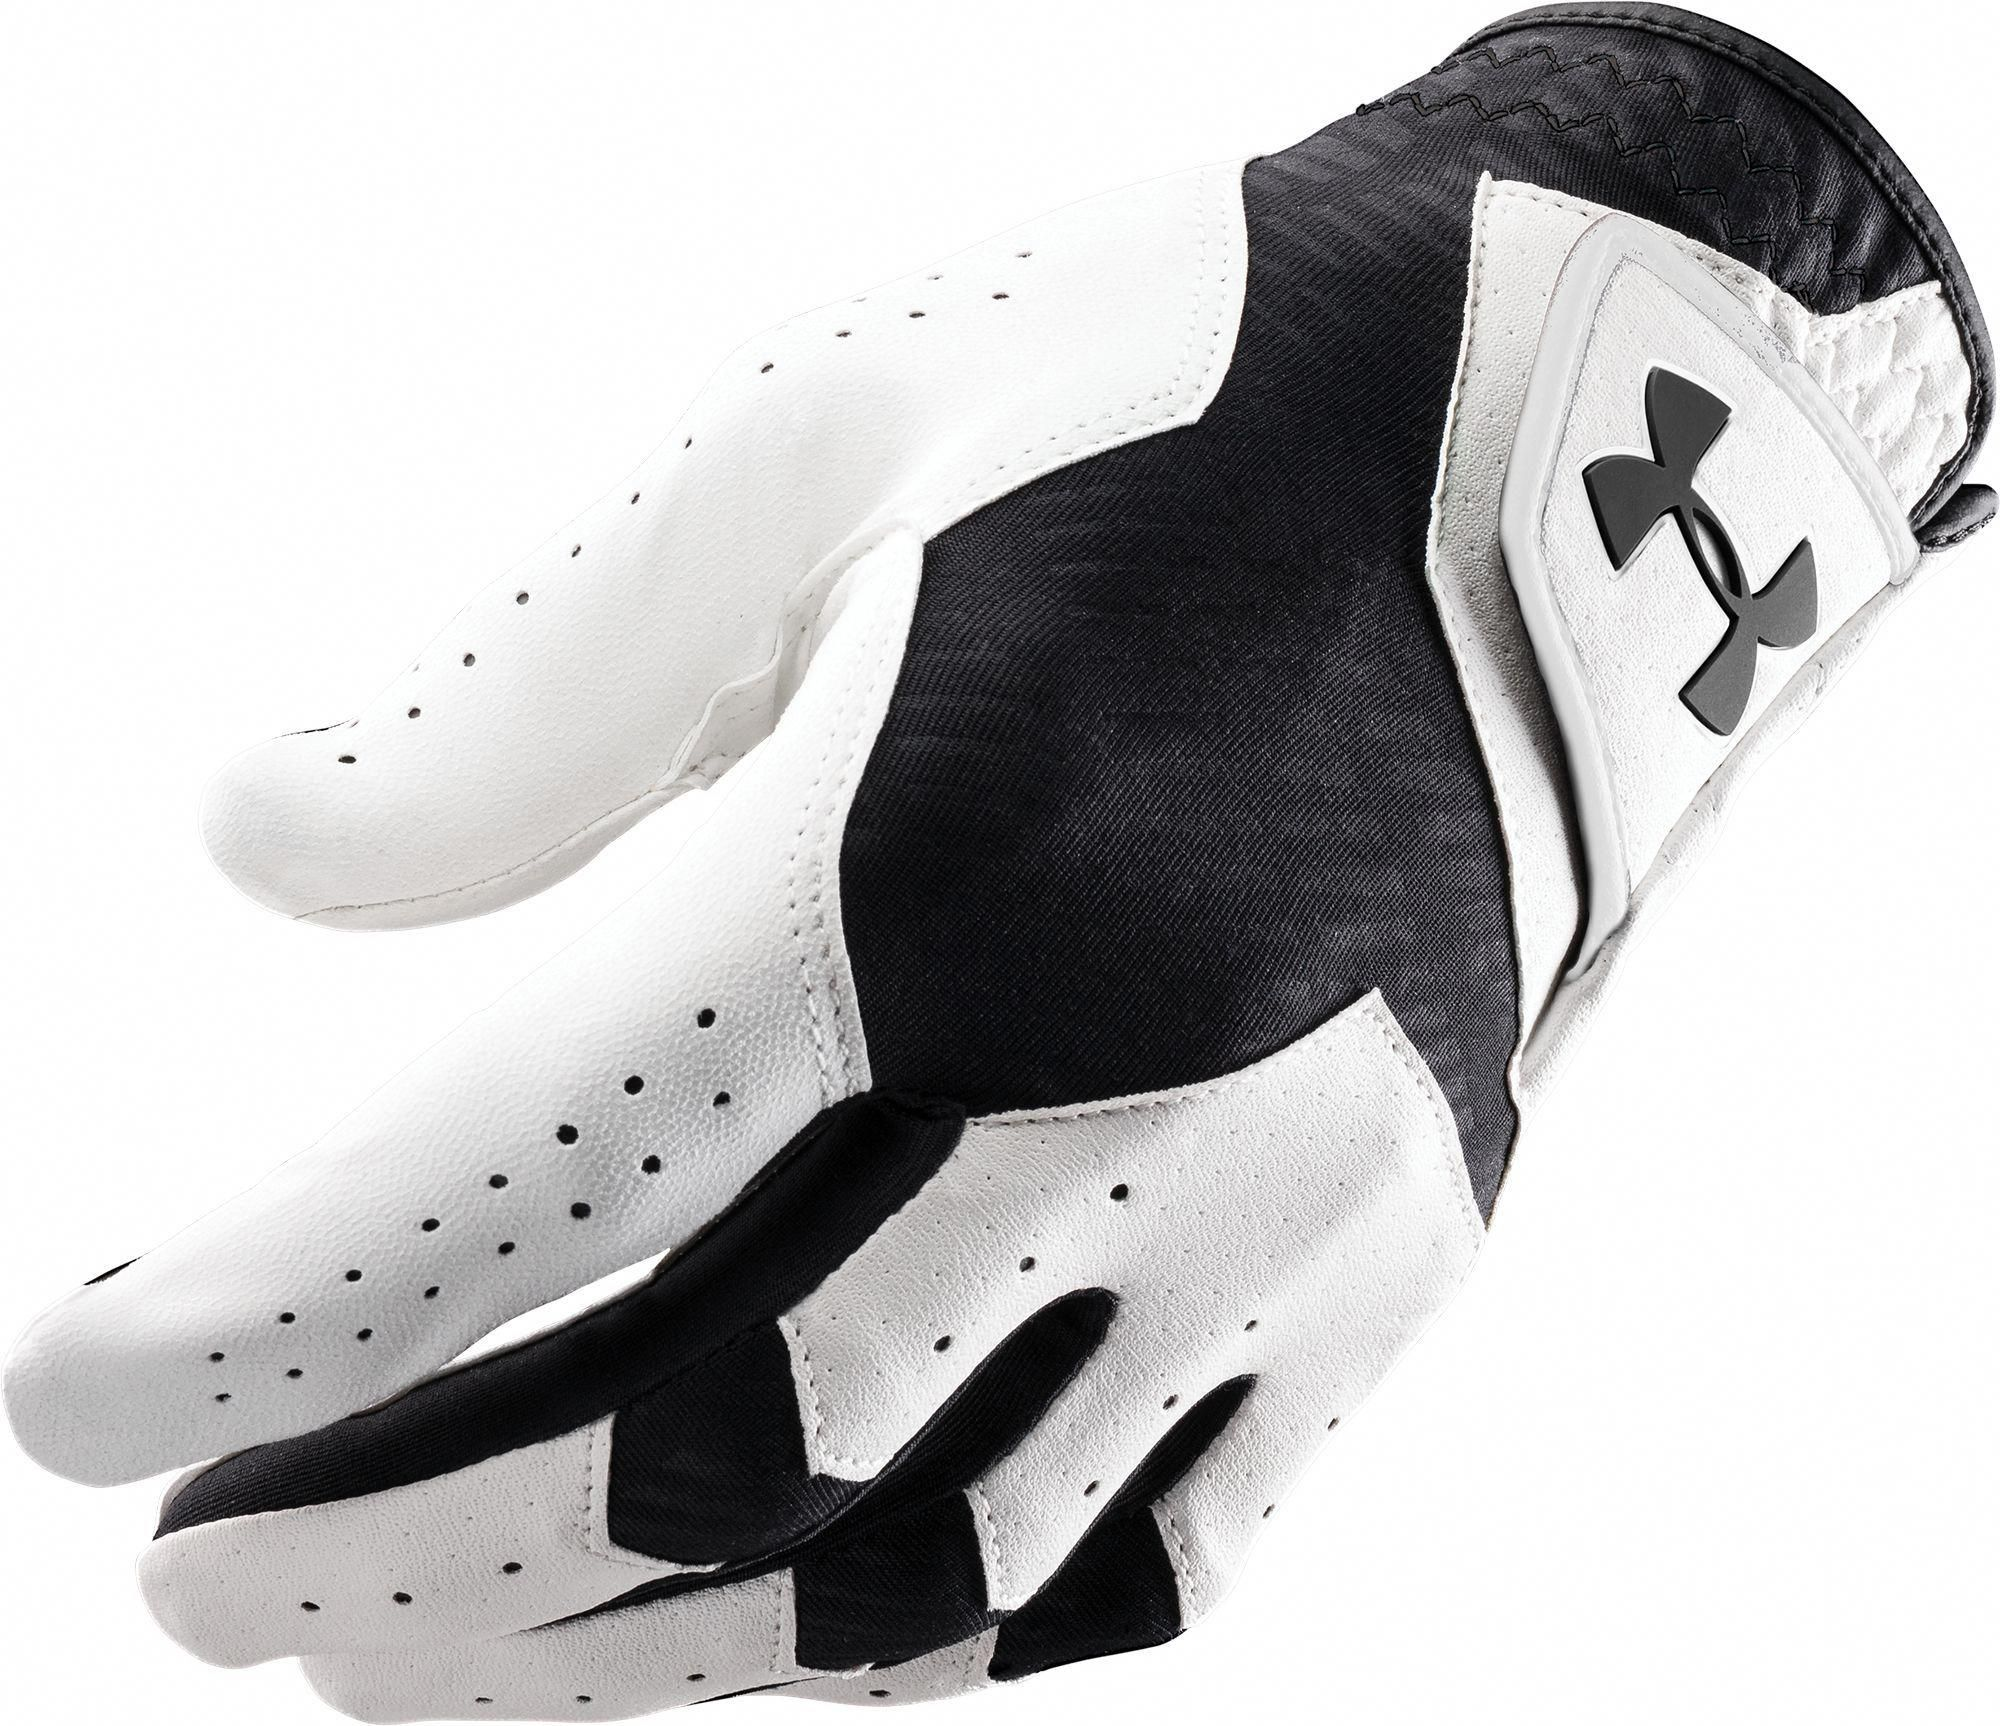 462af2974f1 Under Armour CoolSwitch Golf Glove in 2018